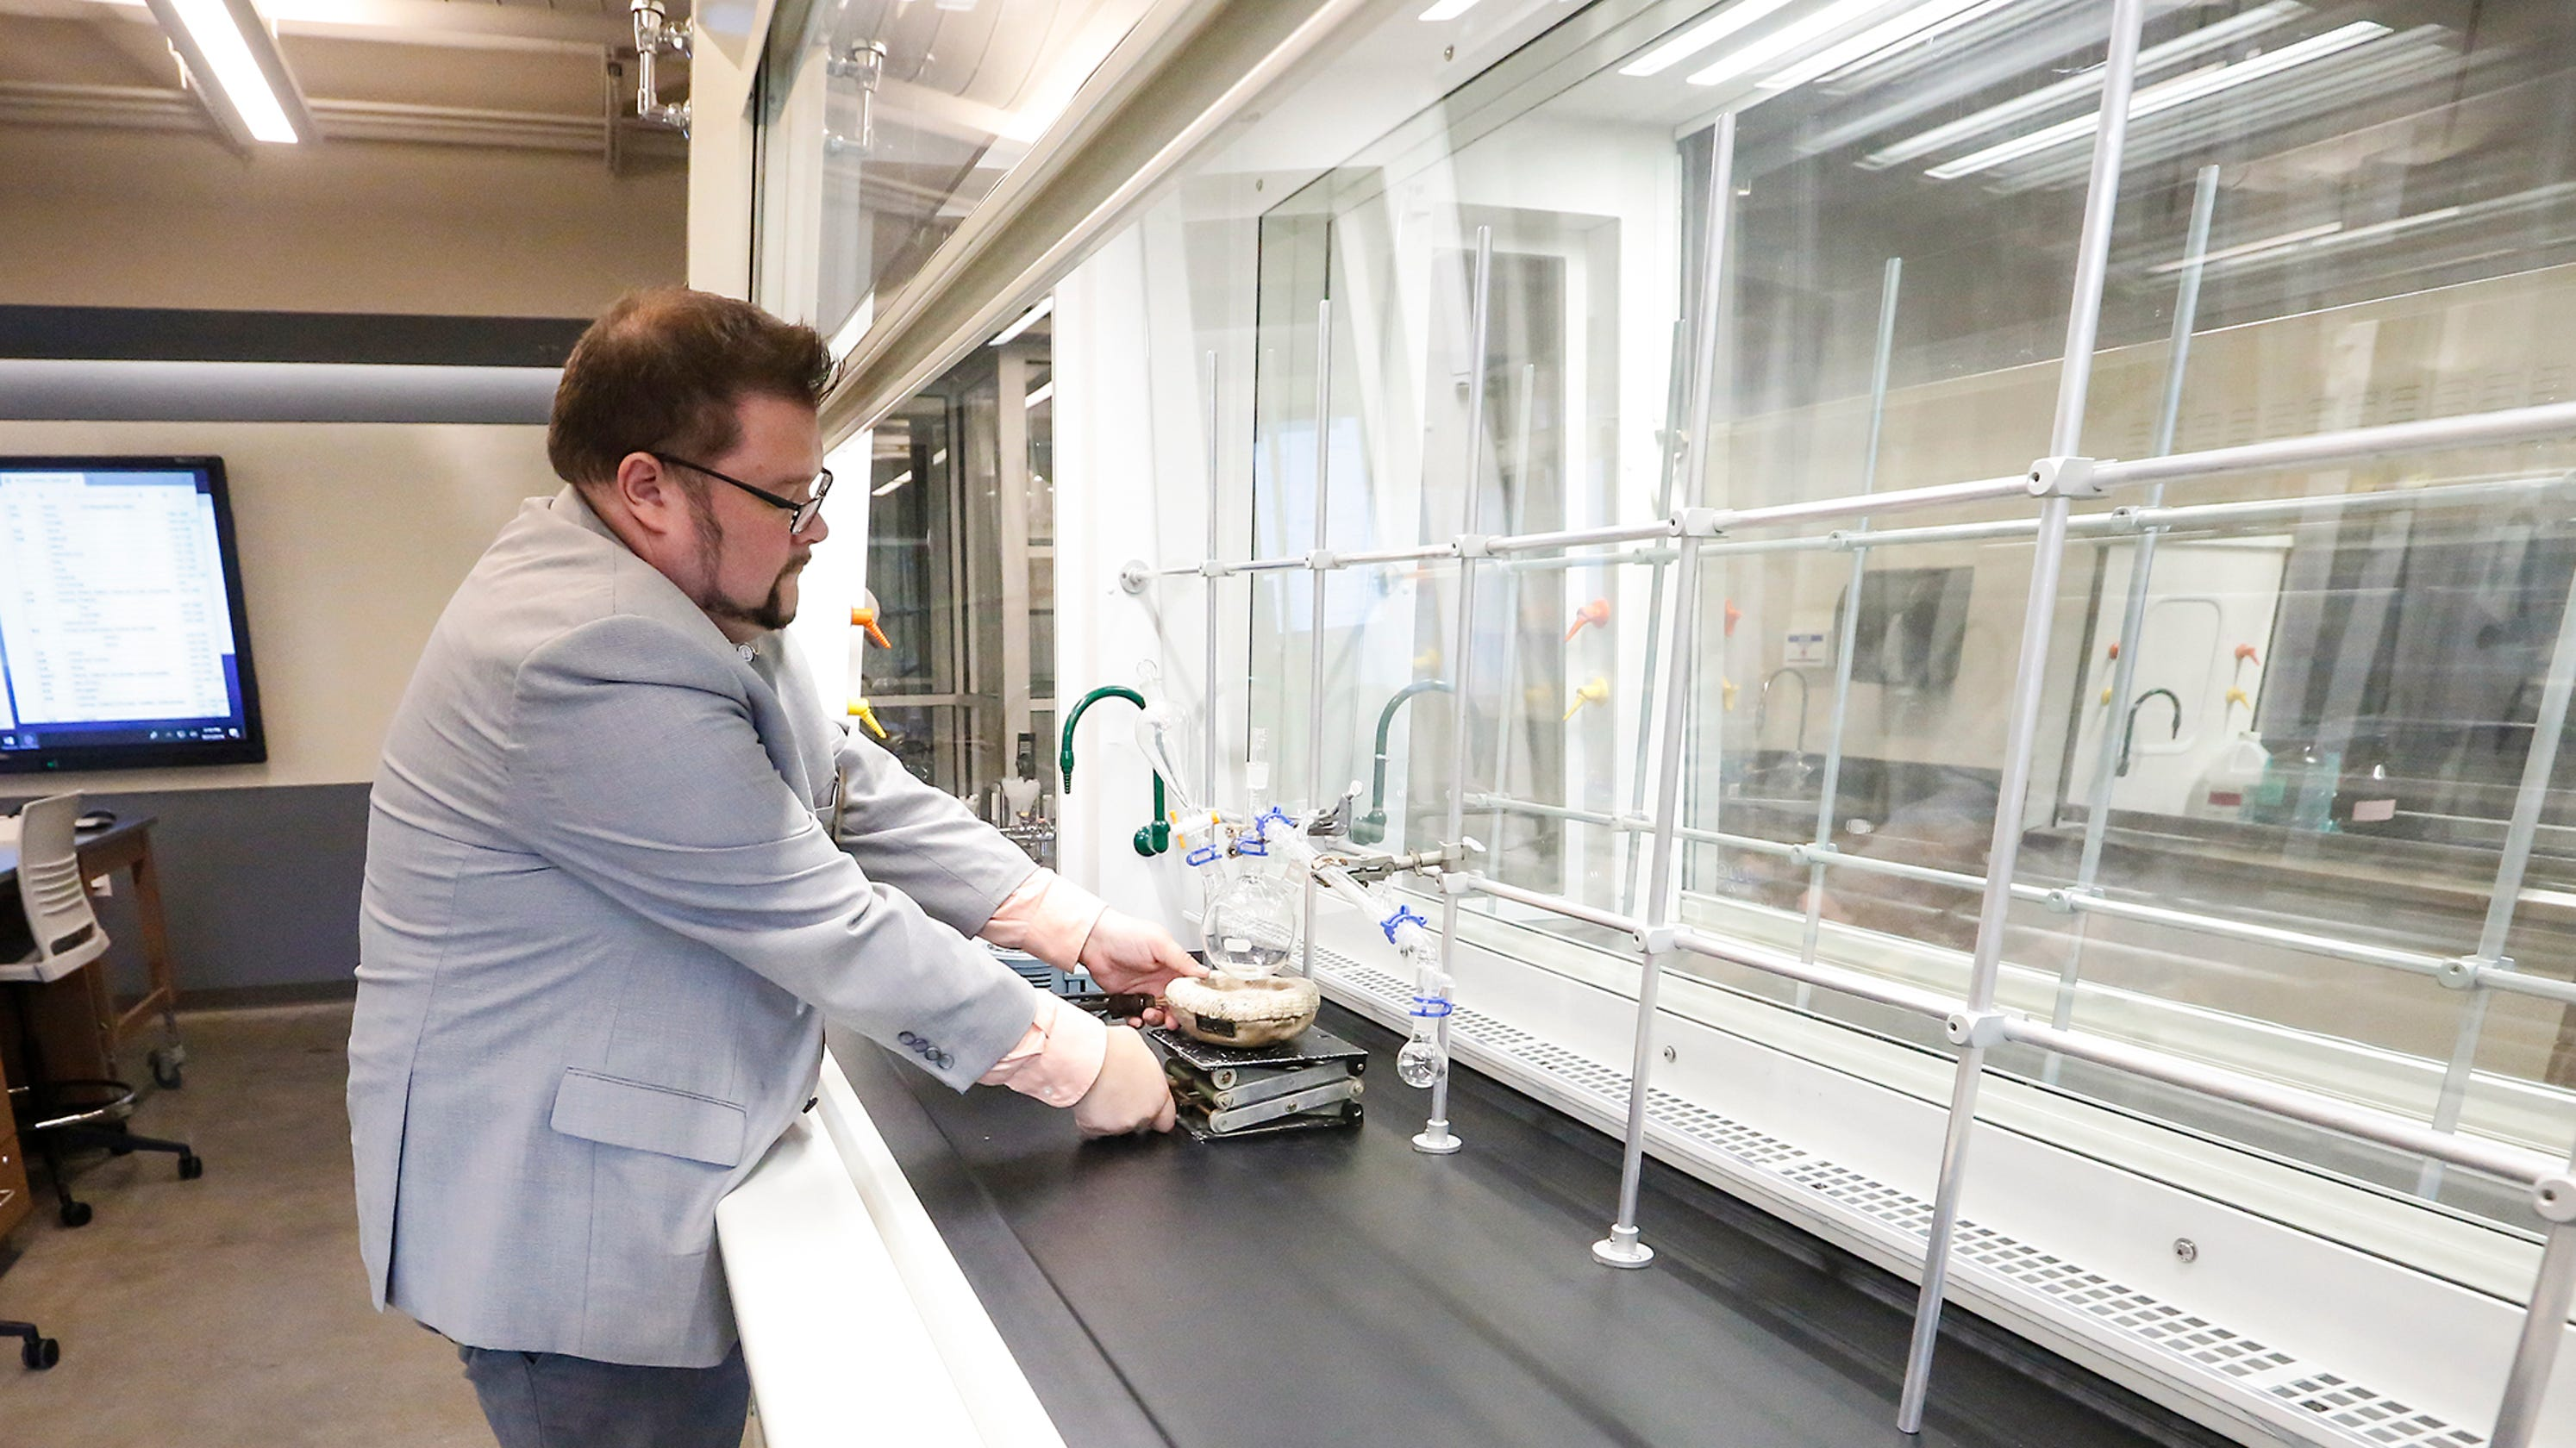 Collaboration builds: Marian University opens new science center